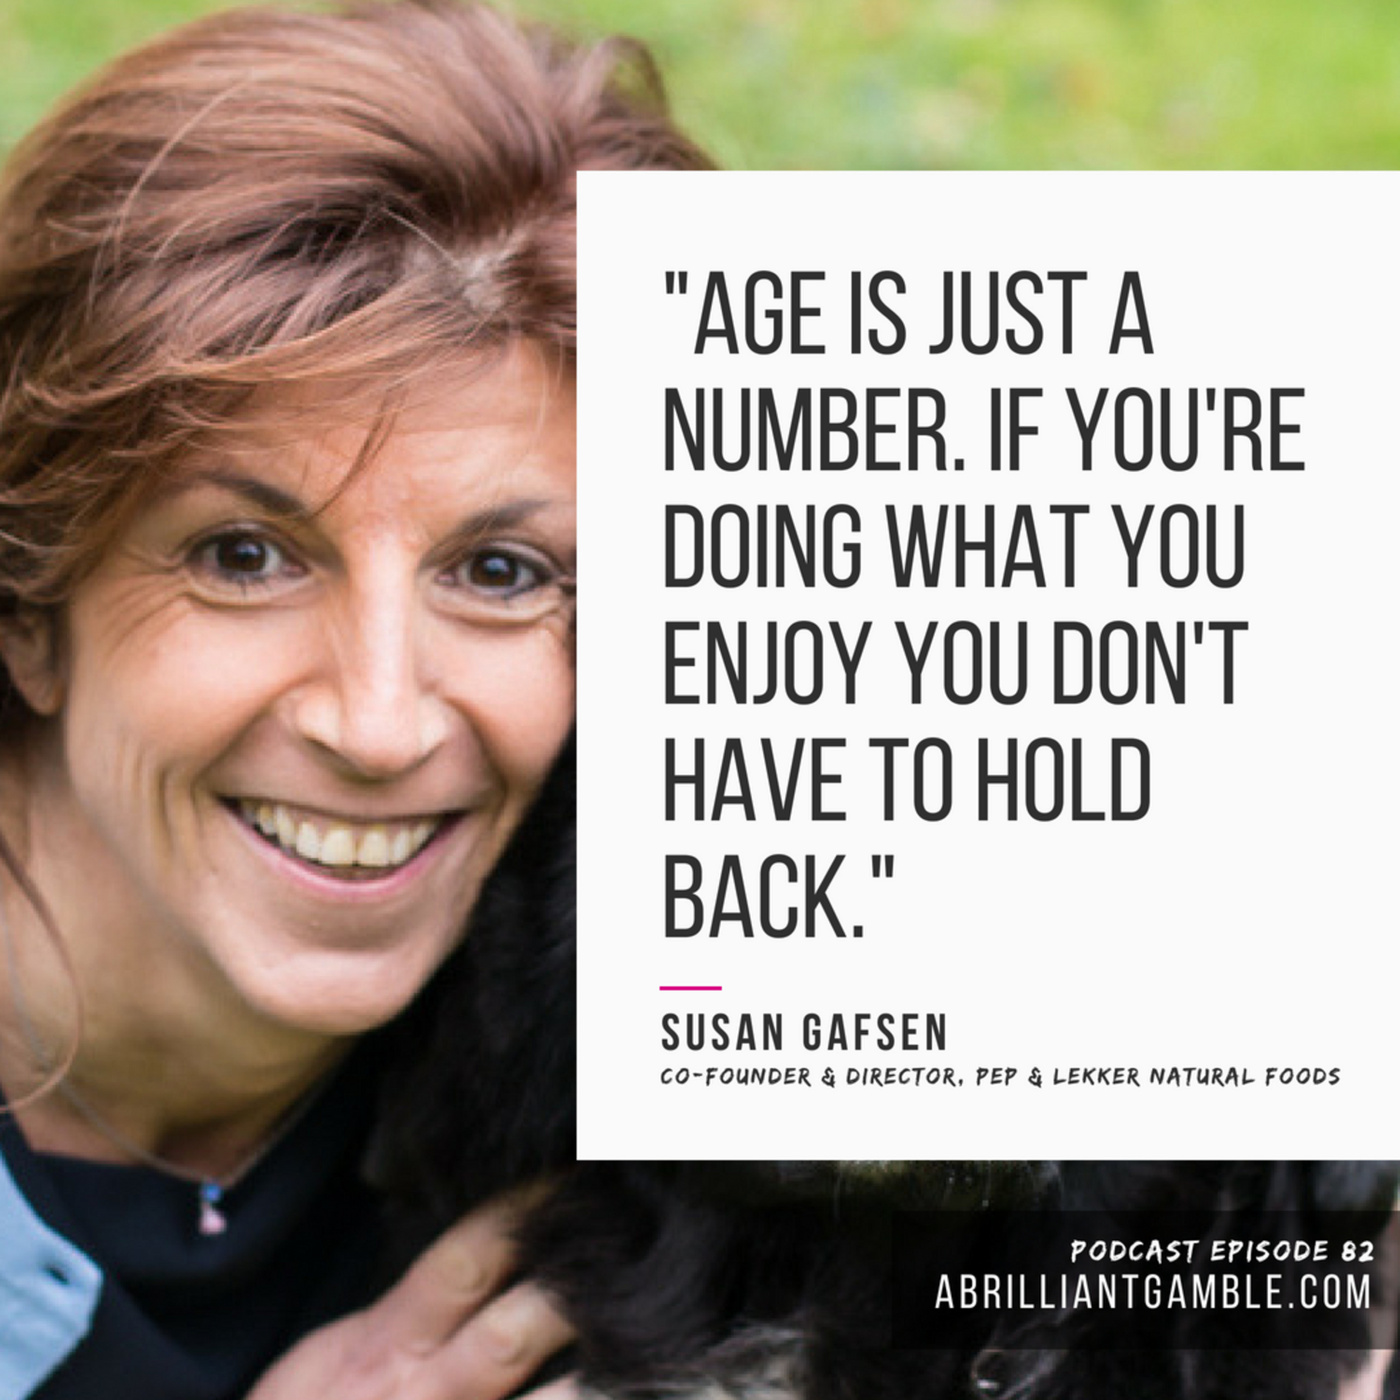 82 Forgetting the Rules with Susan Gafsen, Co-Founder and Director of Pep & Lekker